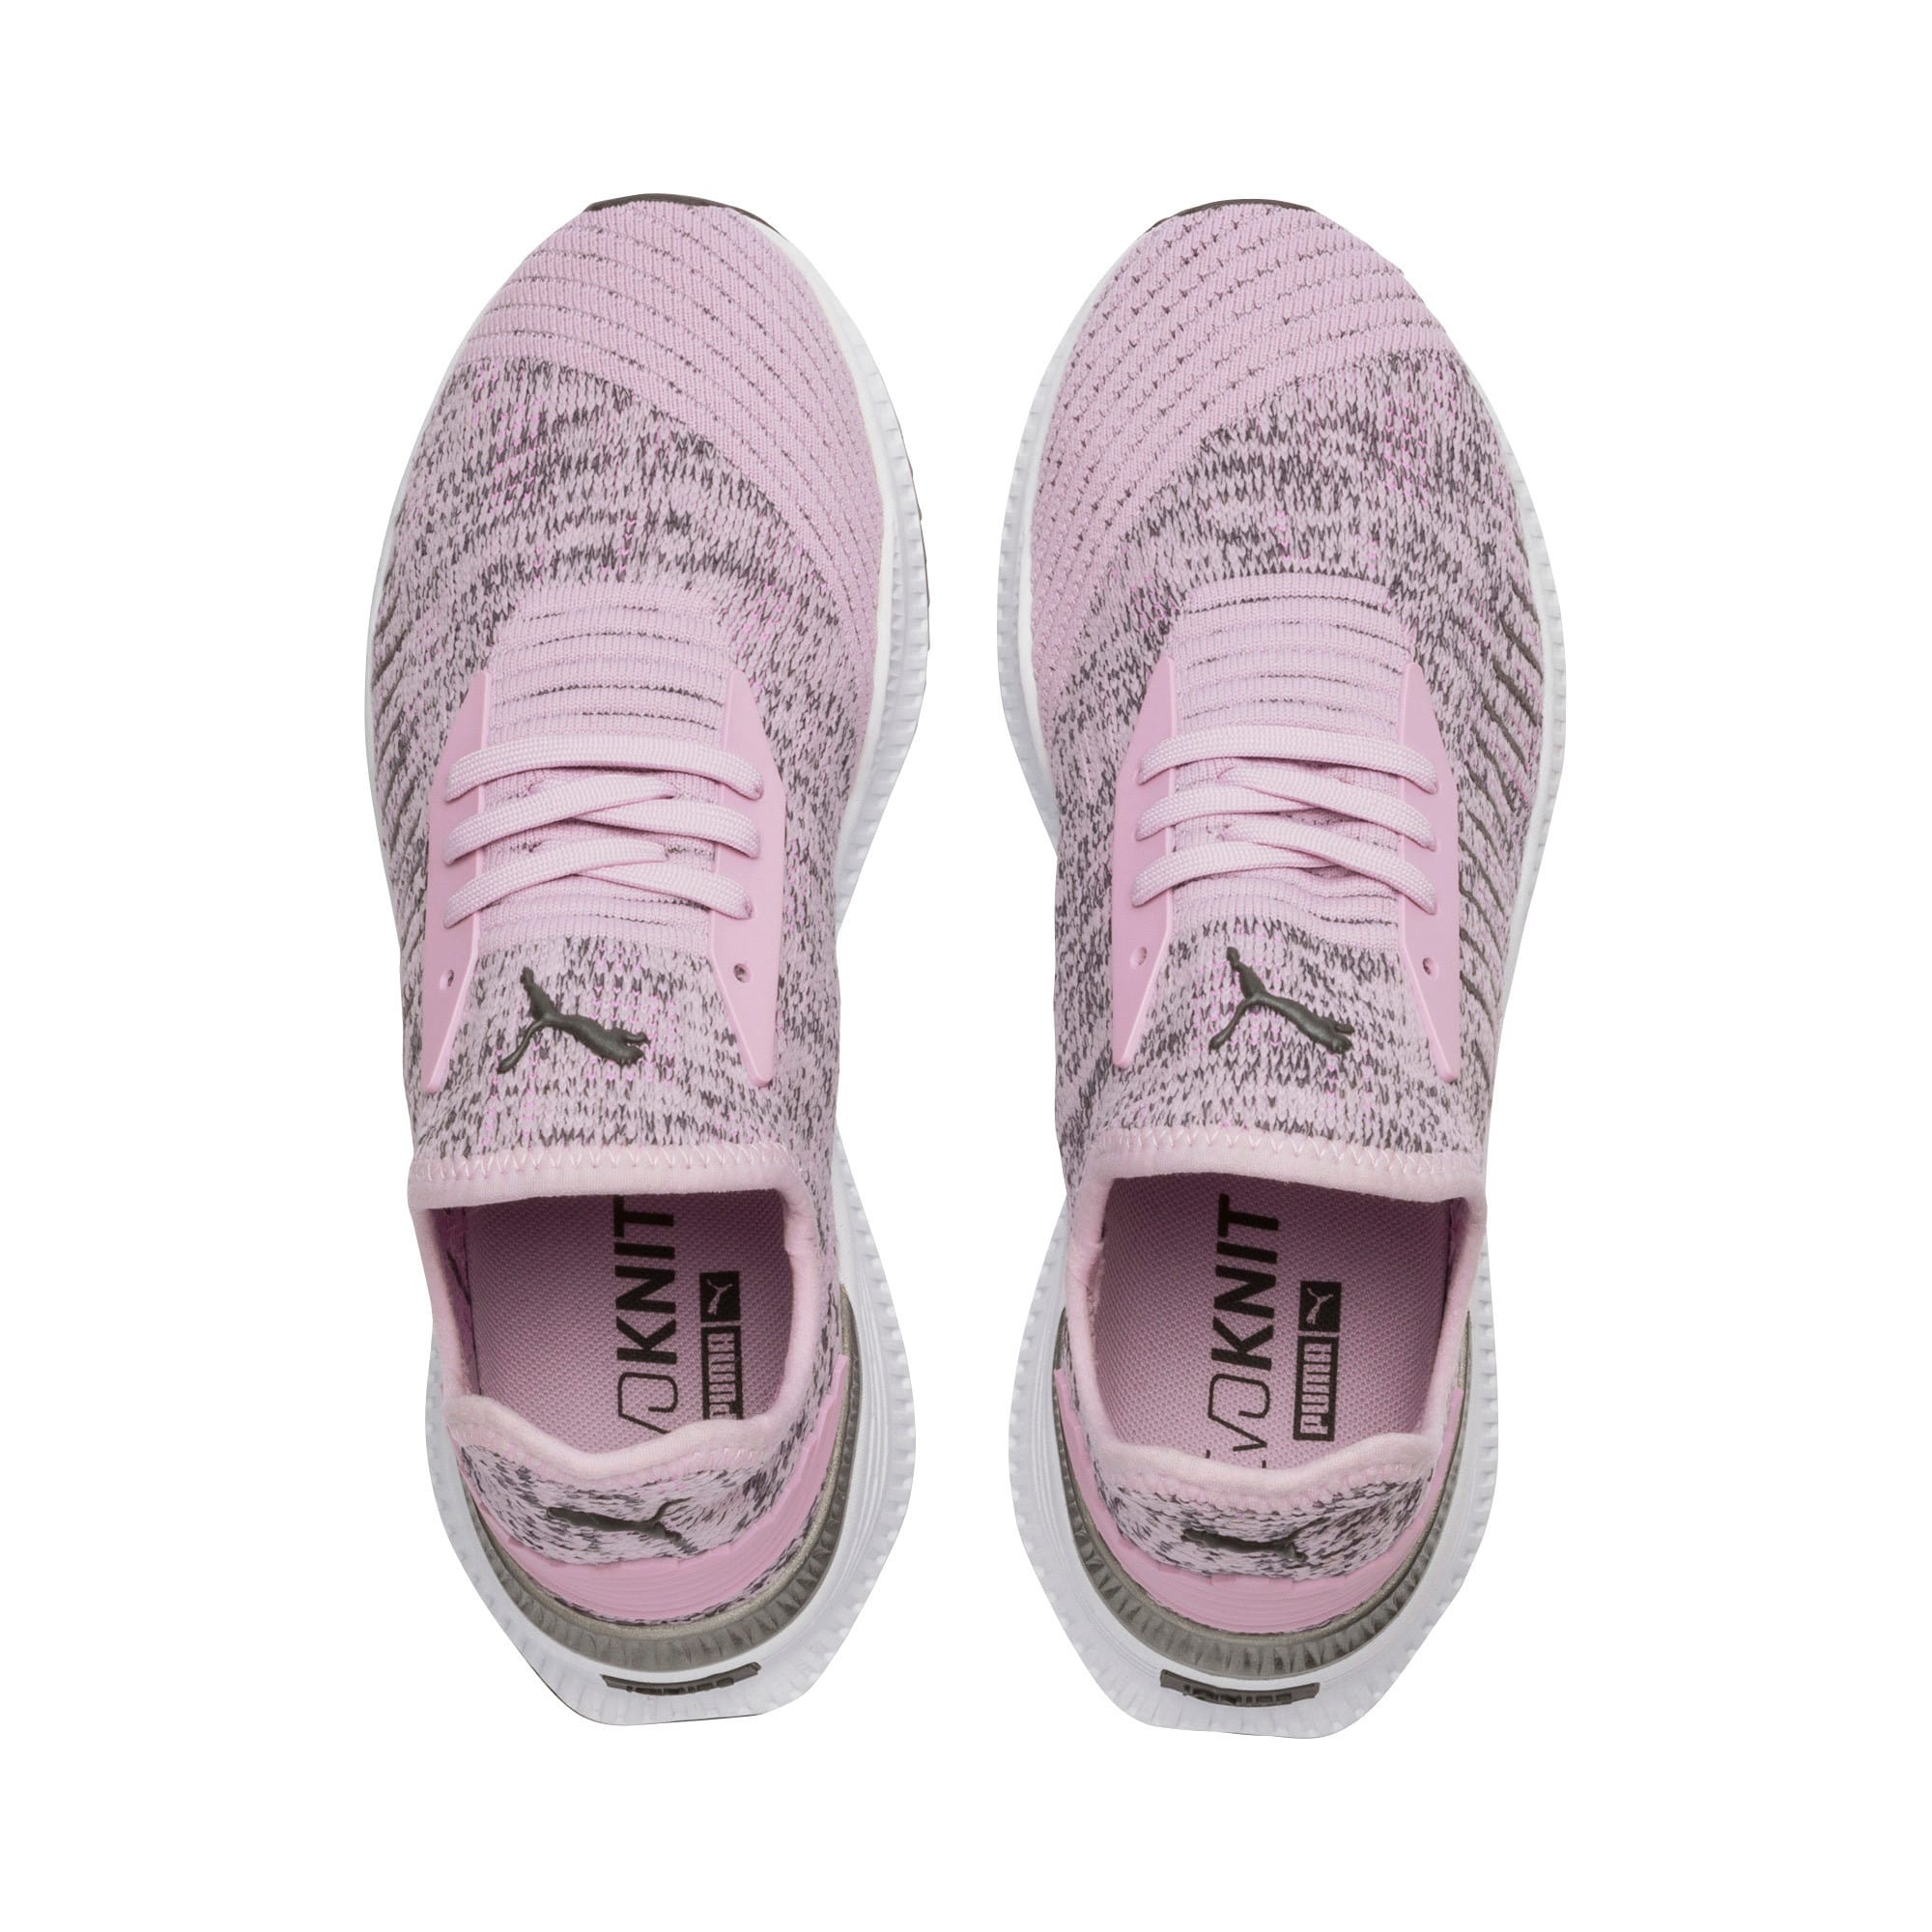 Thumbnail 6 of AVID evoKNIT Mosaic Women's Sneakers, WOrchid-IGate-Orchid, medium